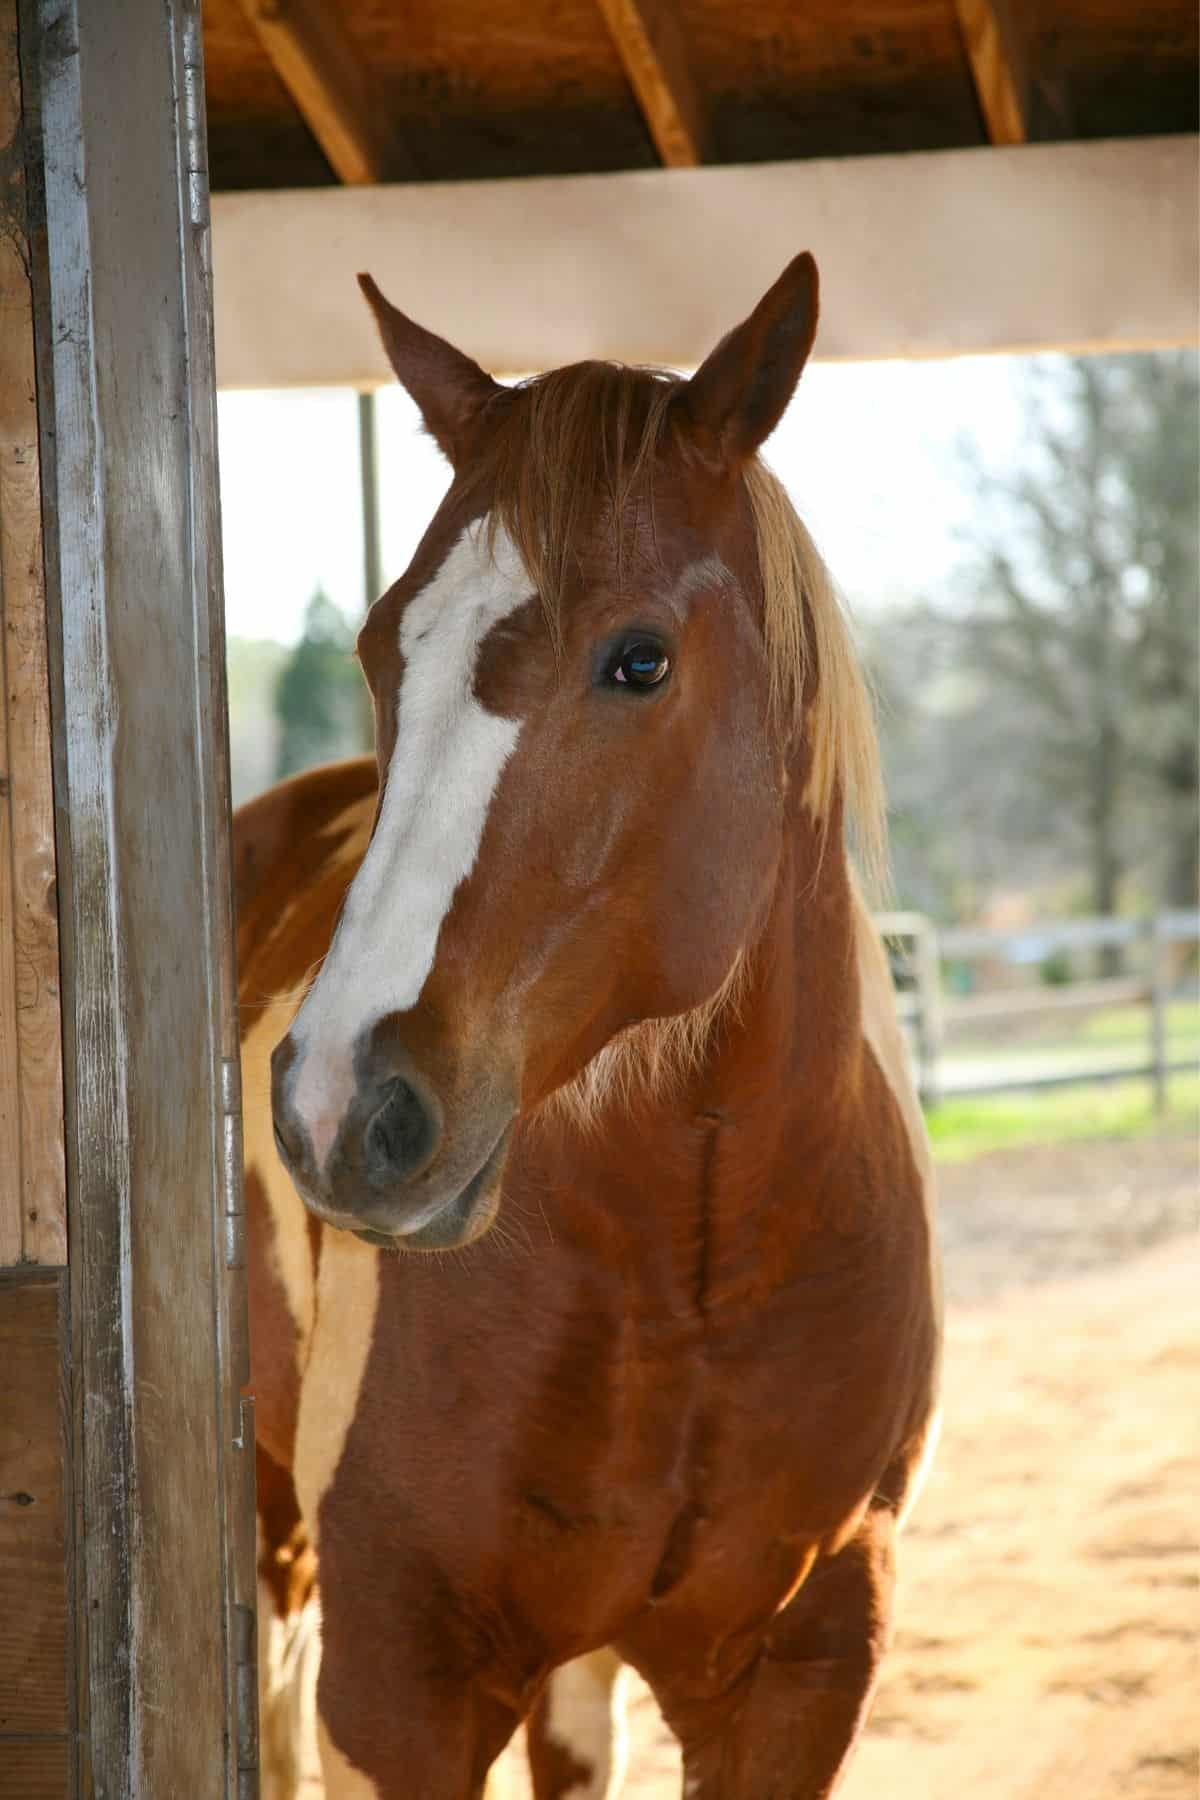 Brown horse with white markings in barn